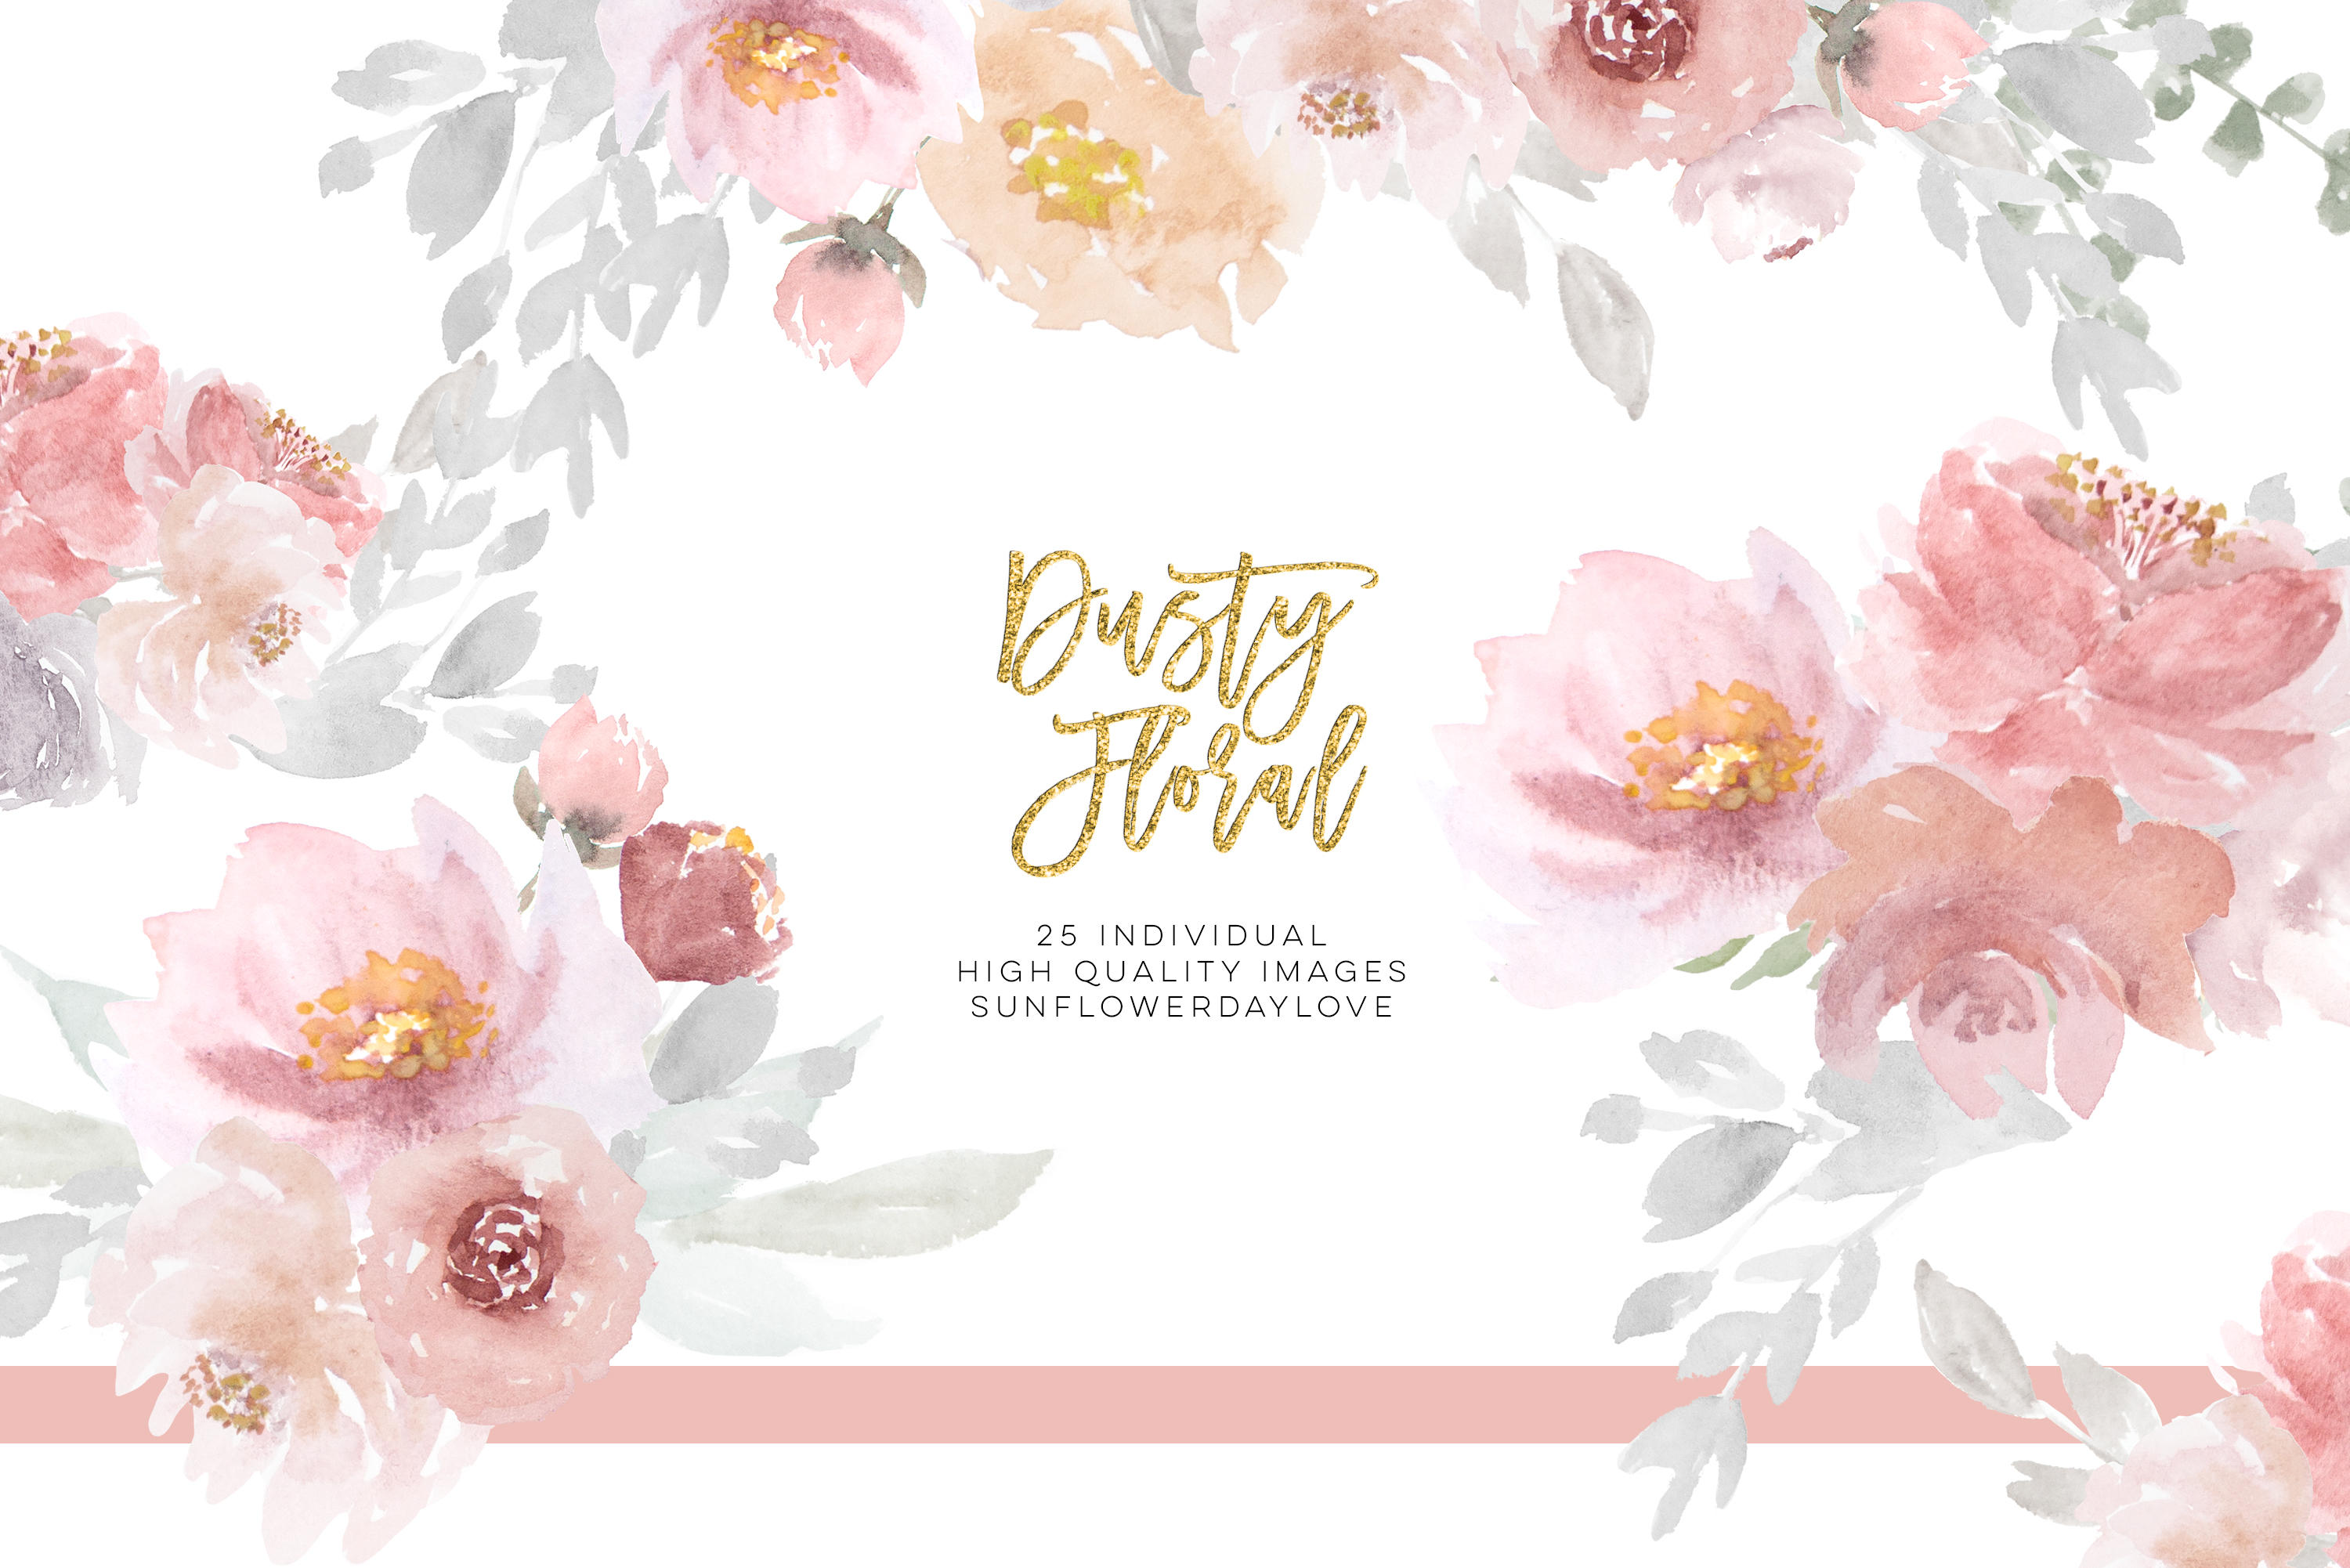 Dusty rose floral clipart, Wedding Invitation Clip Art example image 1